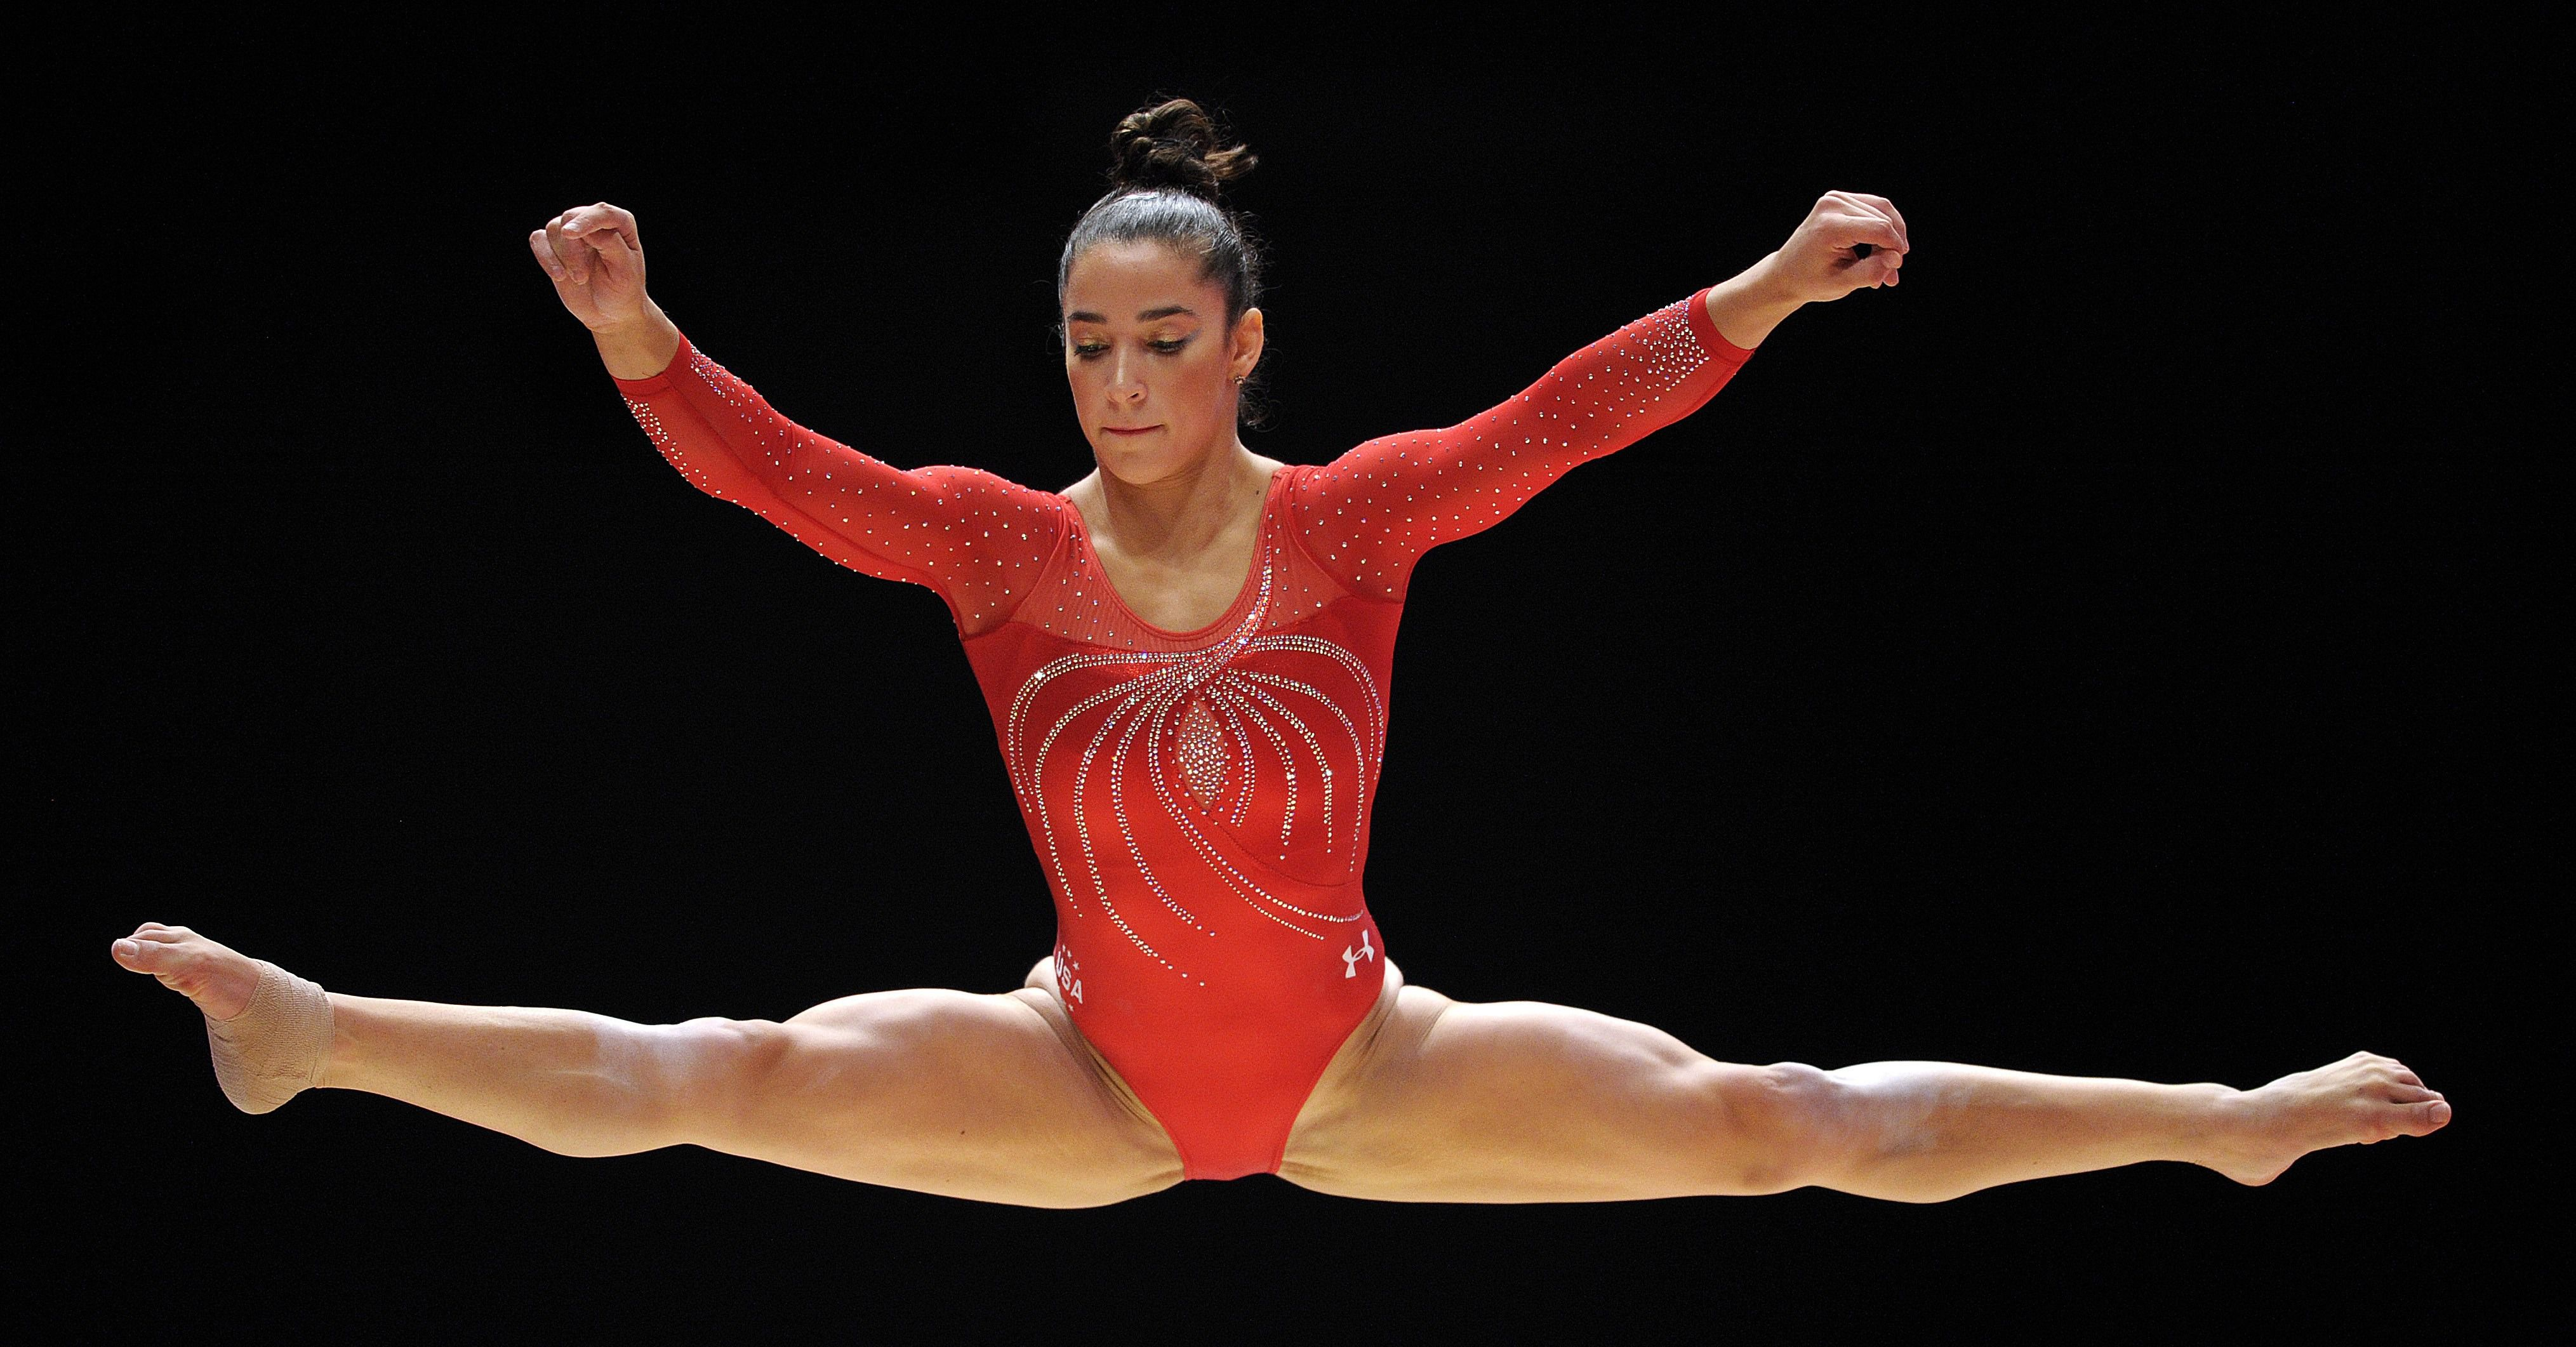 Aly Raisman Sets Her Sights on 2016 Olympics in Rio